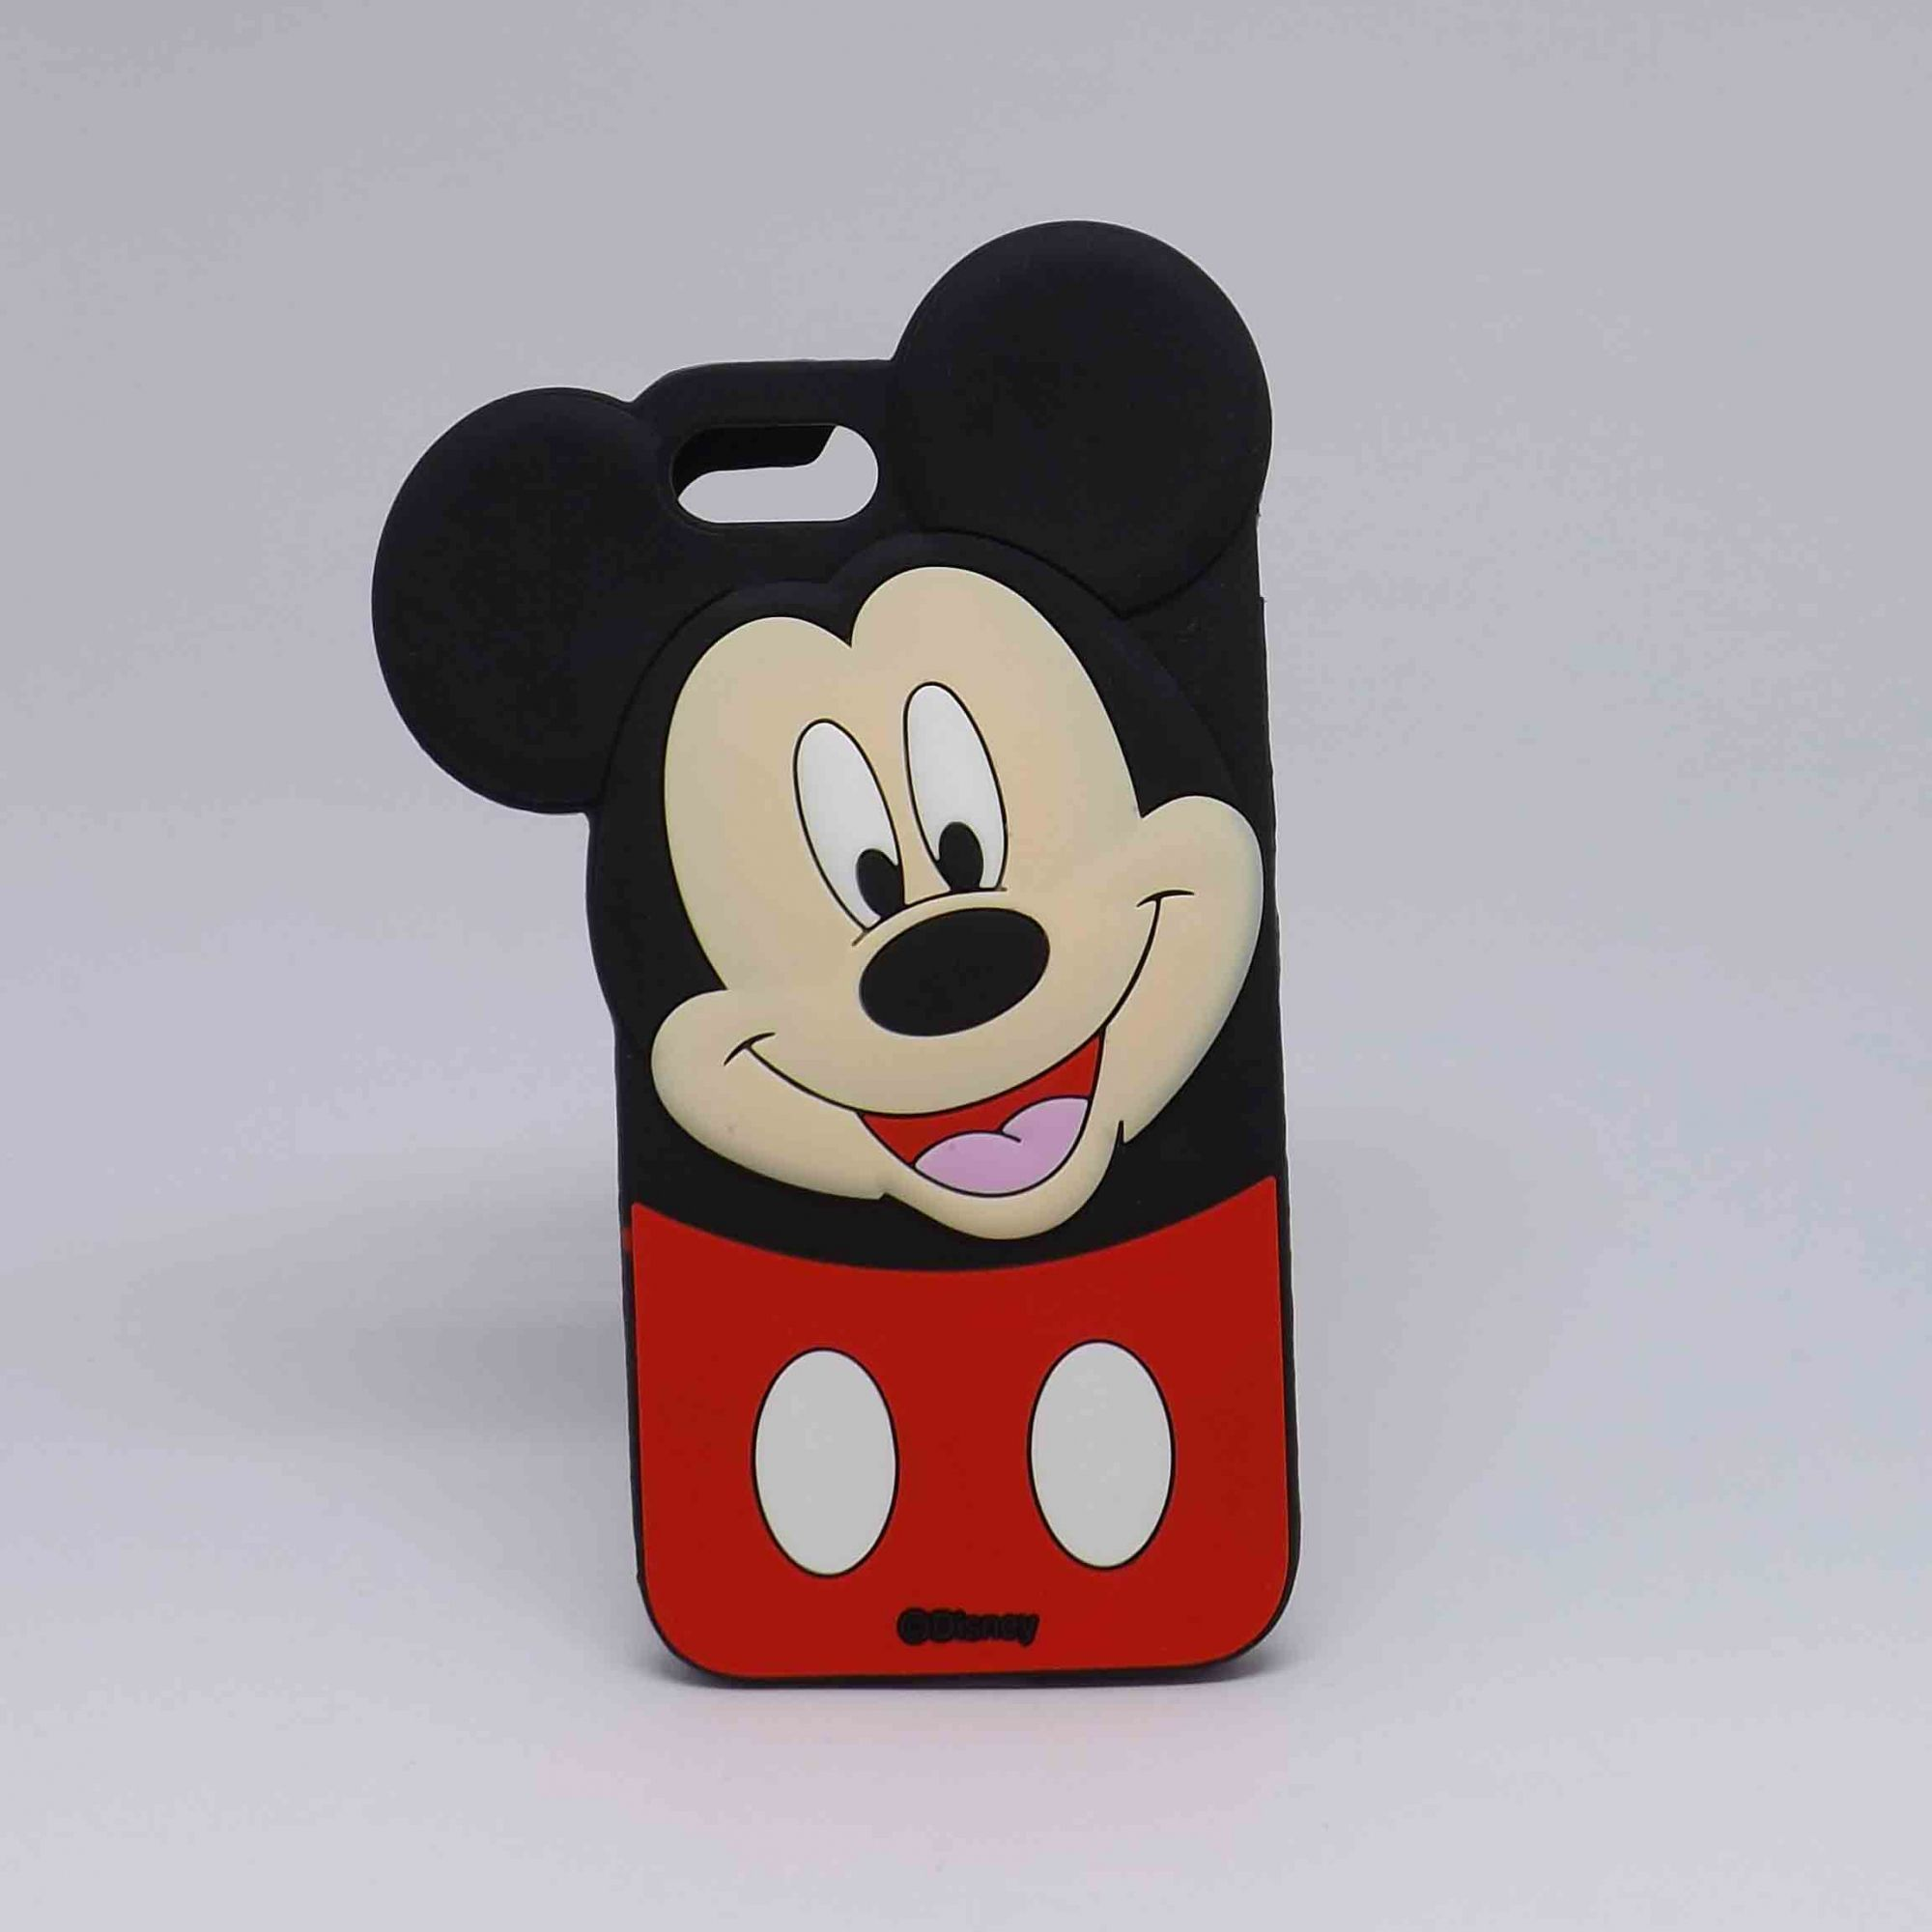 Capa iPhone 7/8 Personagens - Mickey